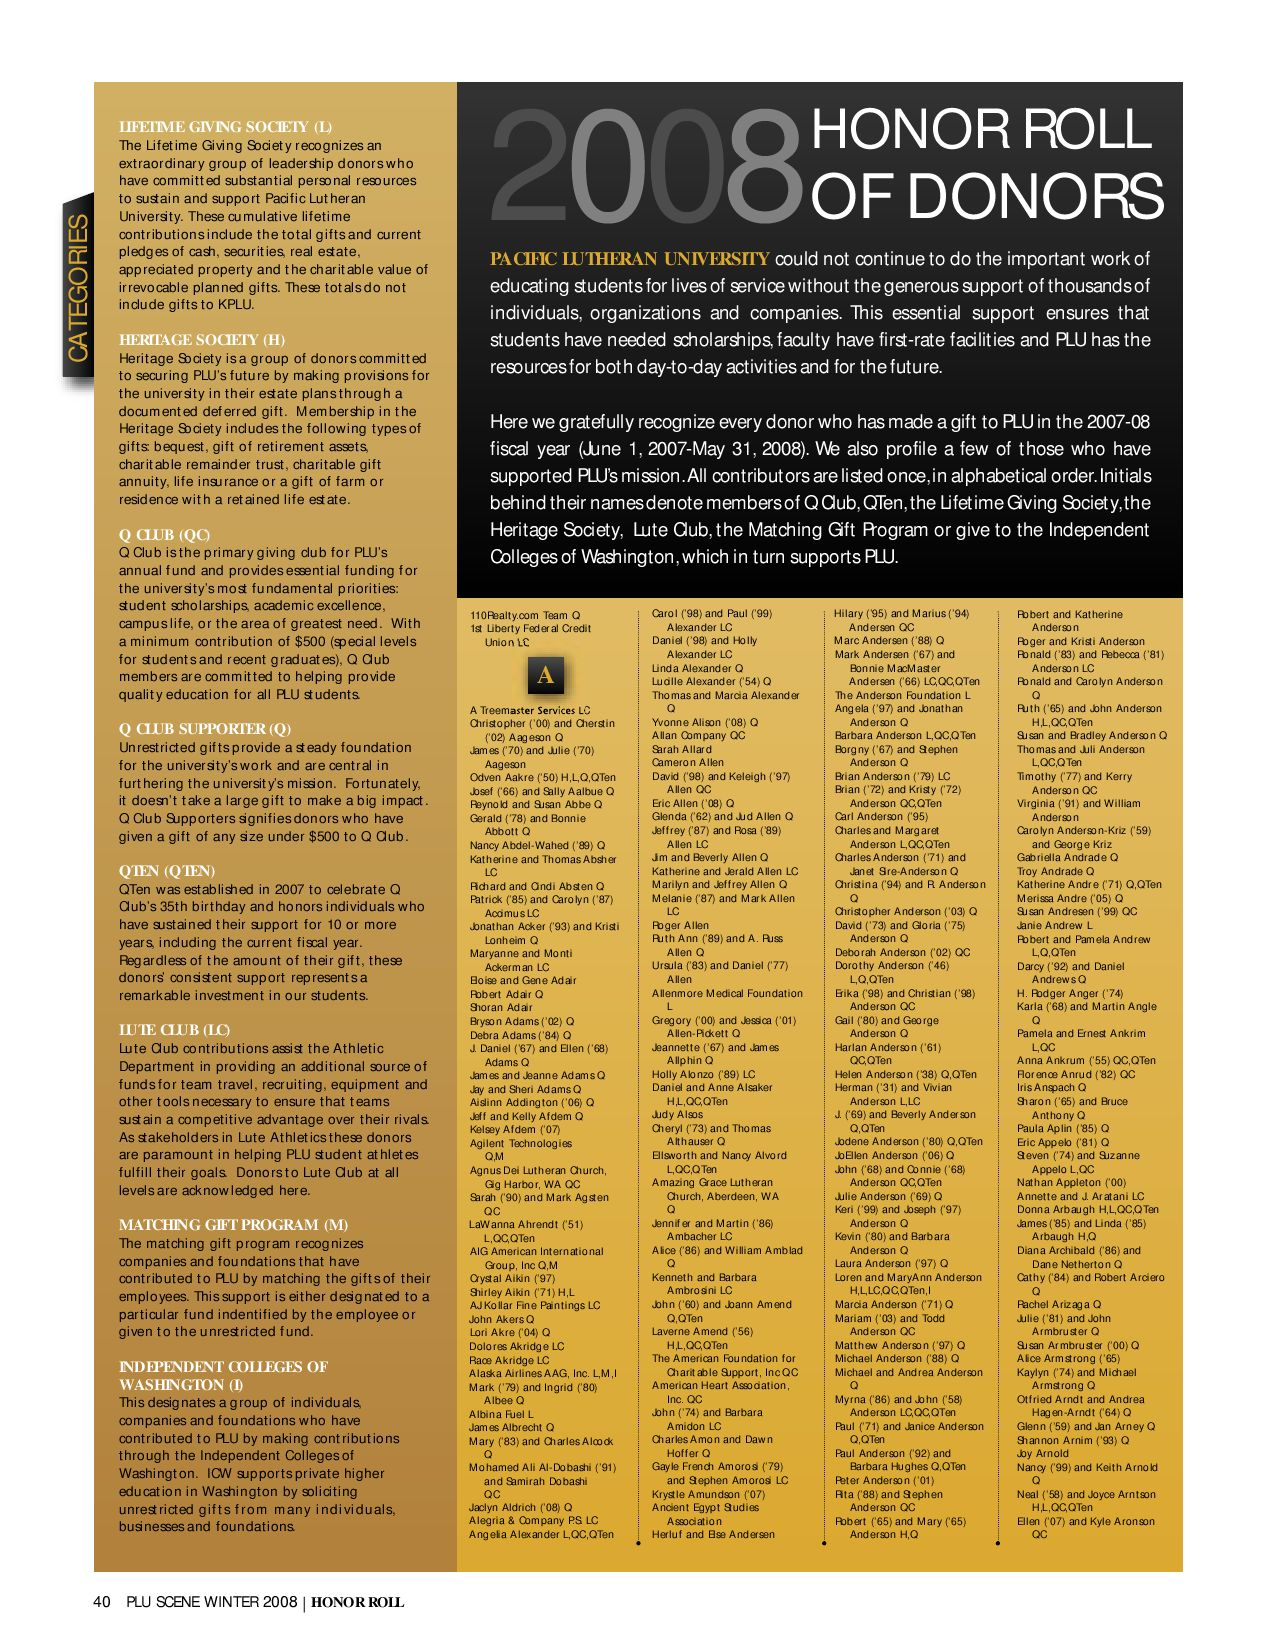 Scene Magazine 2008 Honor Roll of Donors by University